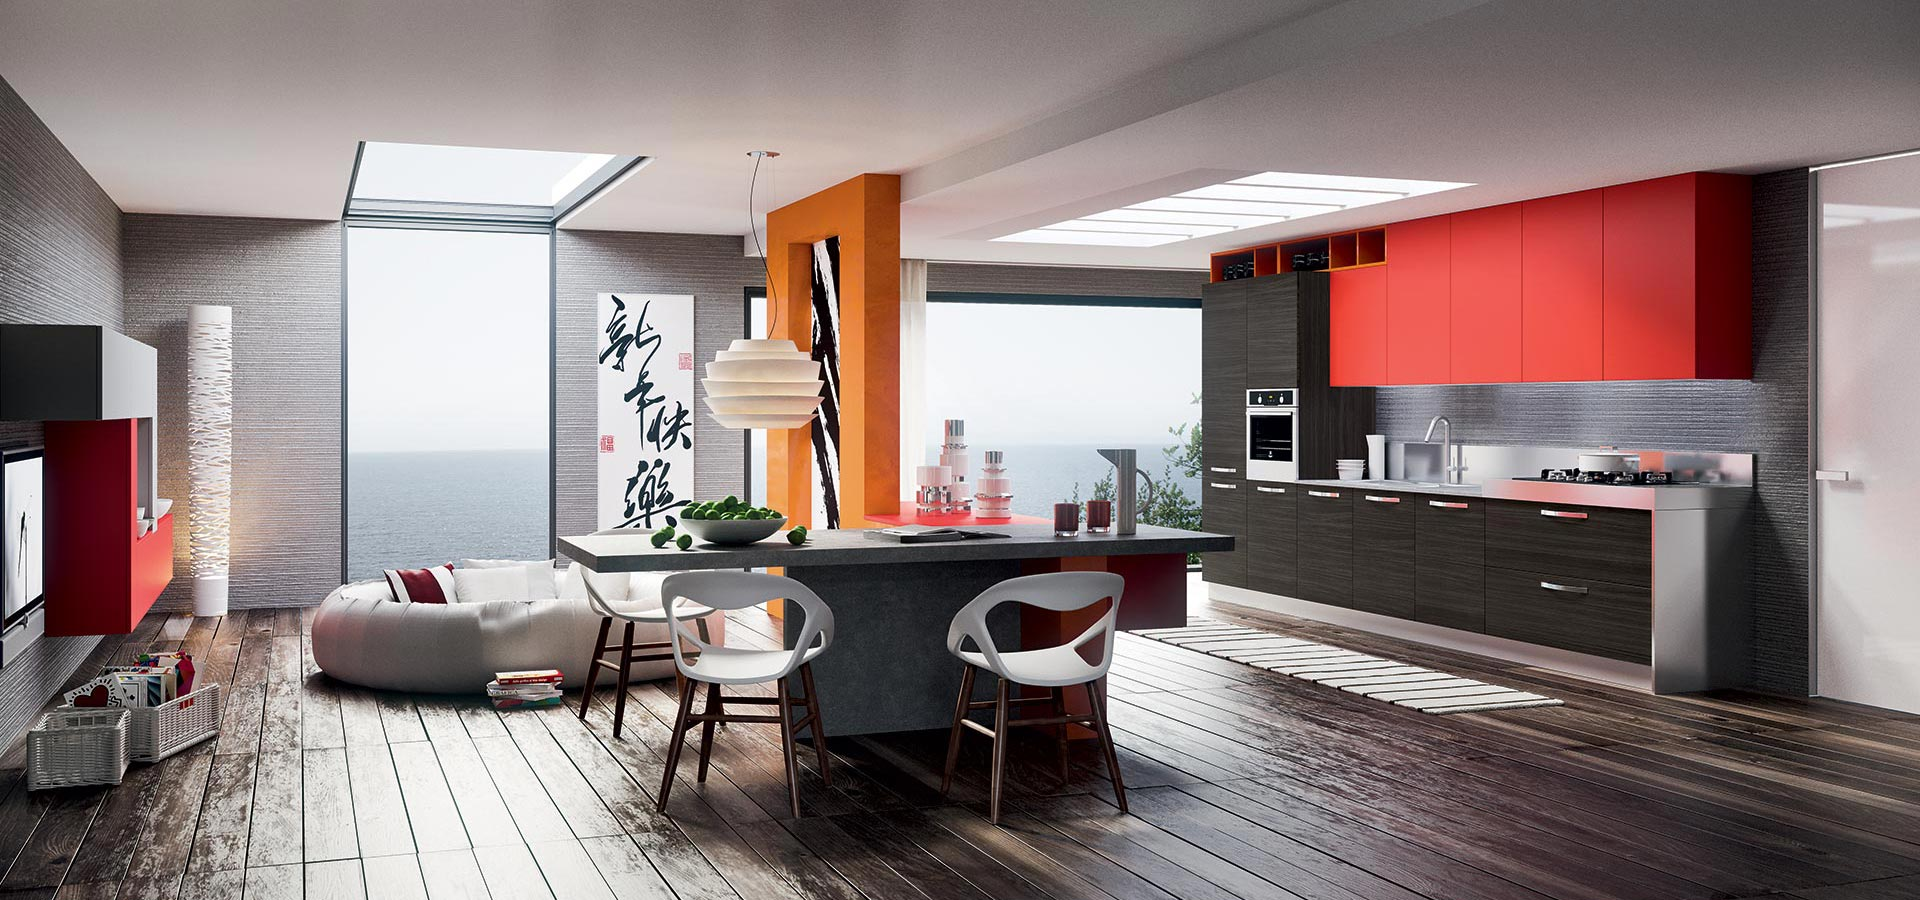 an accent colour and clever partitioning adds vibrancy to this oriental inspired kitchen.